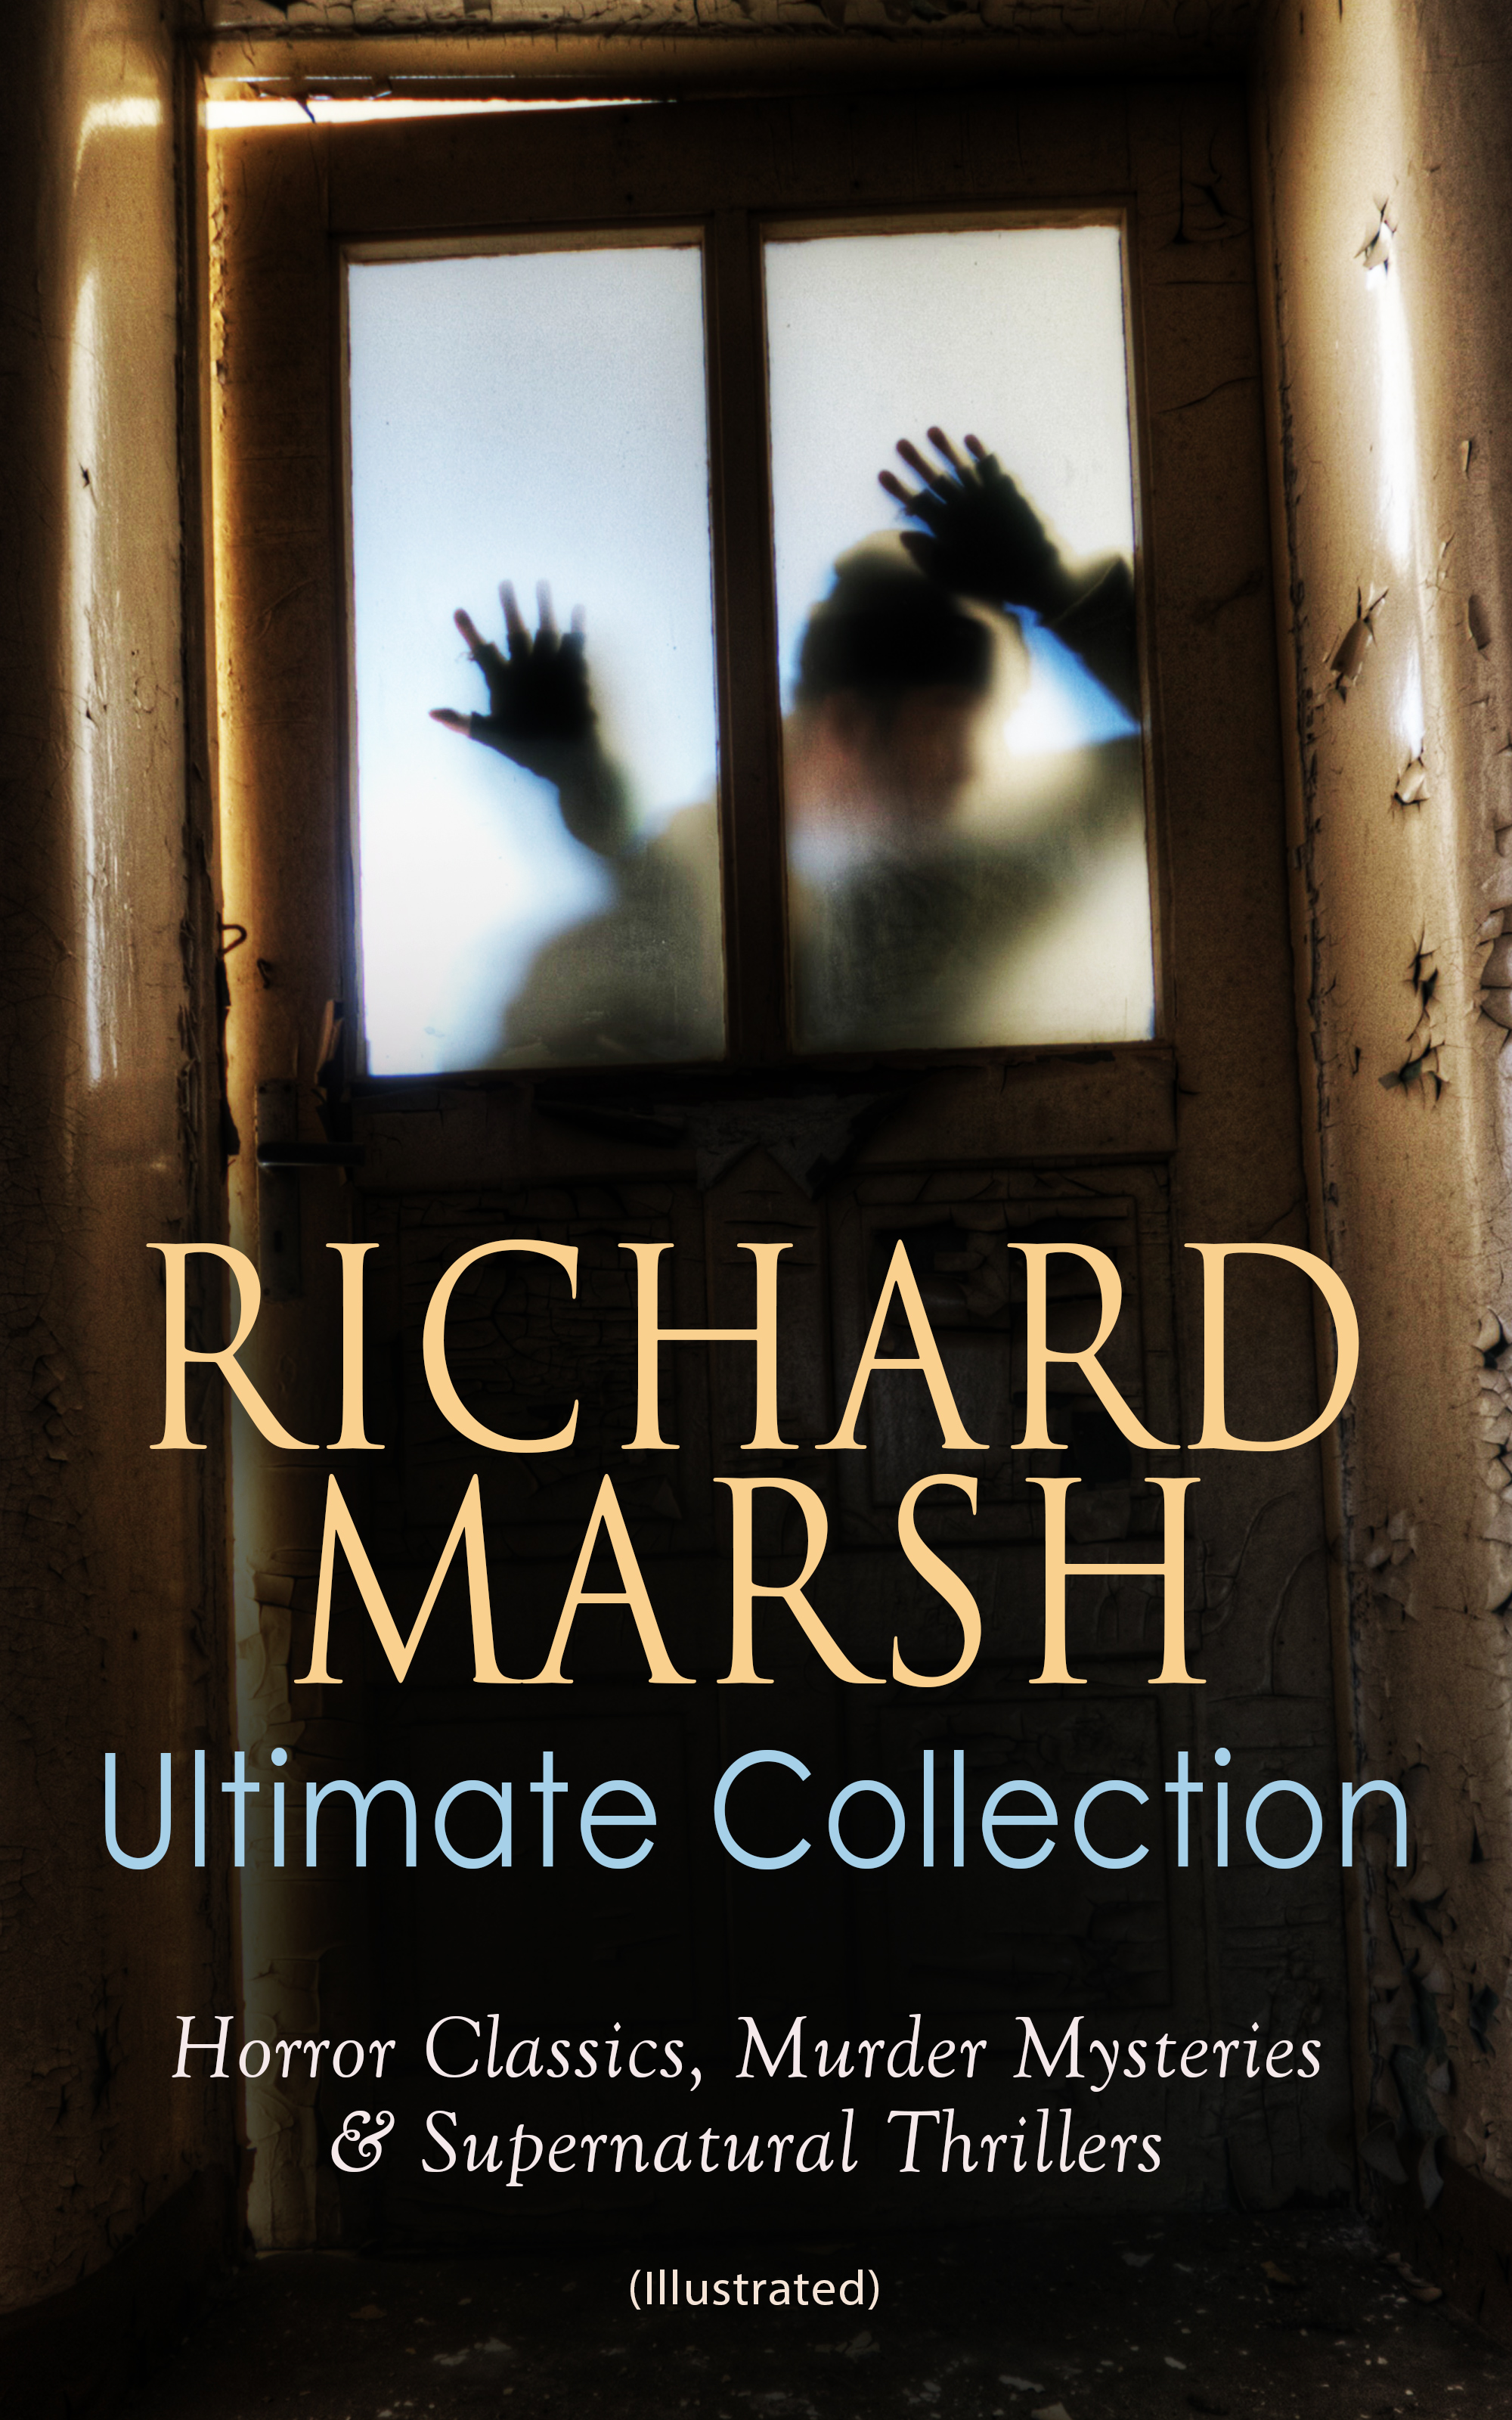 RICHARD MARSH Ultimate Collection: Horror Classics, Murder Mysteries & Supernatural Thrillers (Illustrated) фото